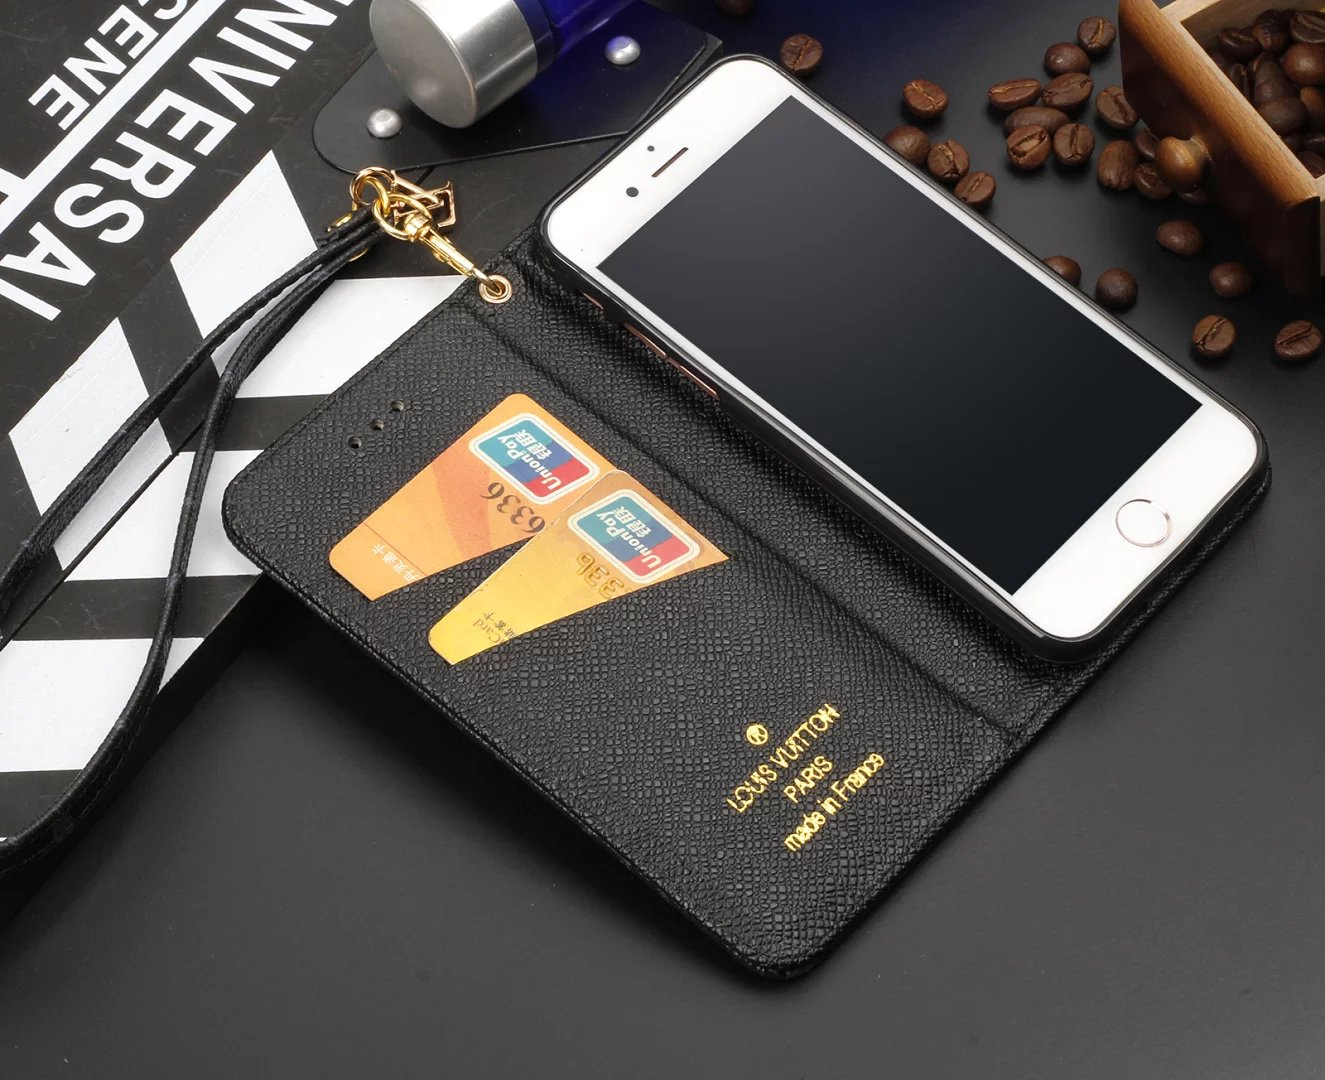 iphone 6 Plus covers online iphone 6 Plus cases fashion iphone6 plus case best cases for iphone best iphone 6 covers phone case with cover iphone cases for sale cases & covers for cell phones best cell phone covers